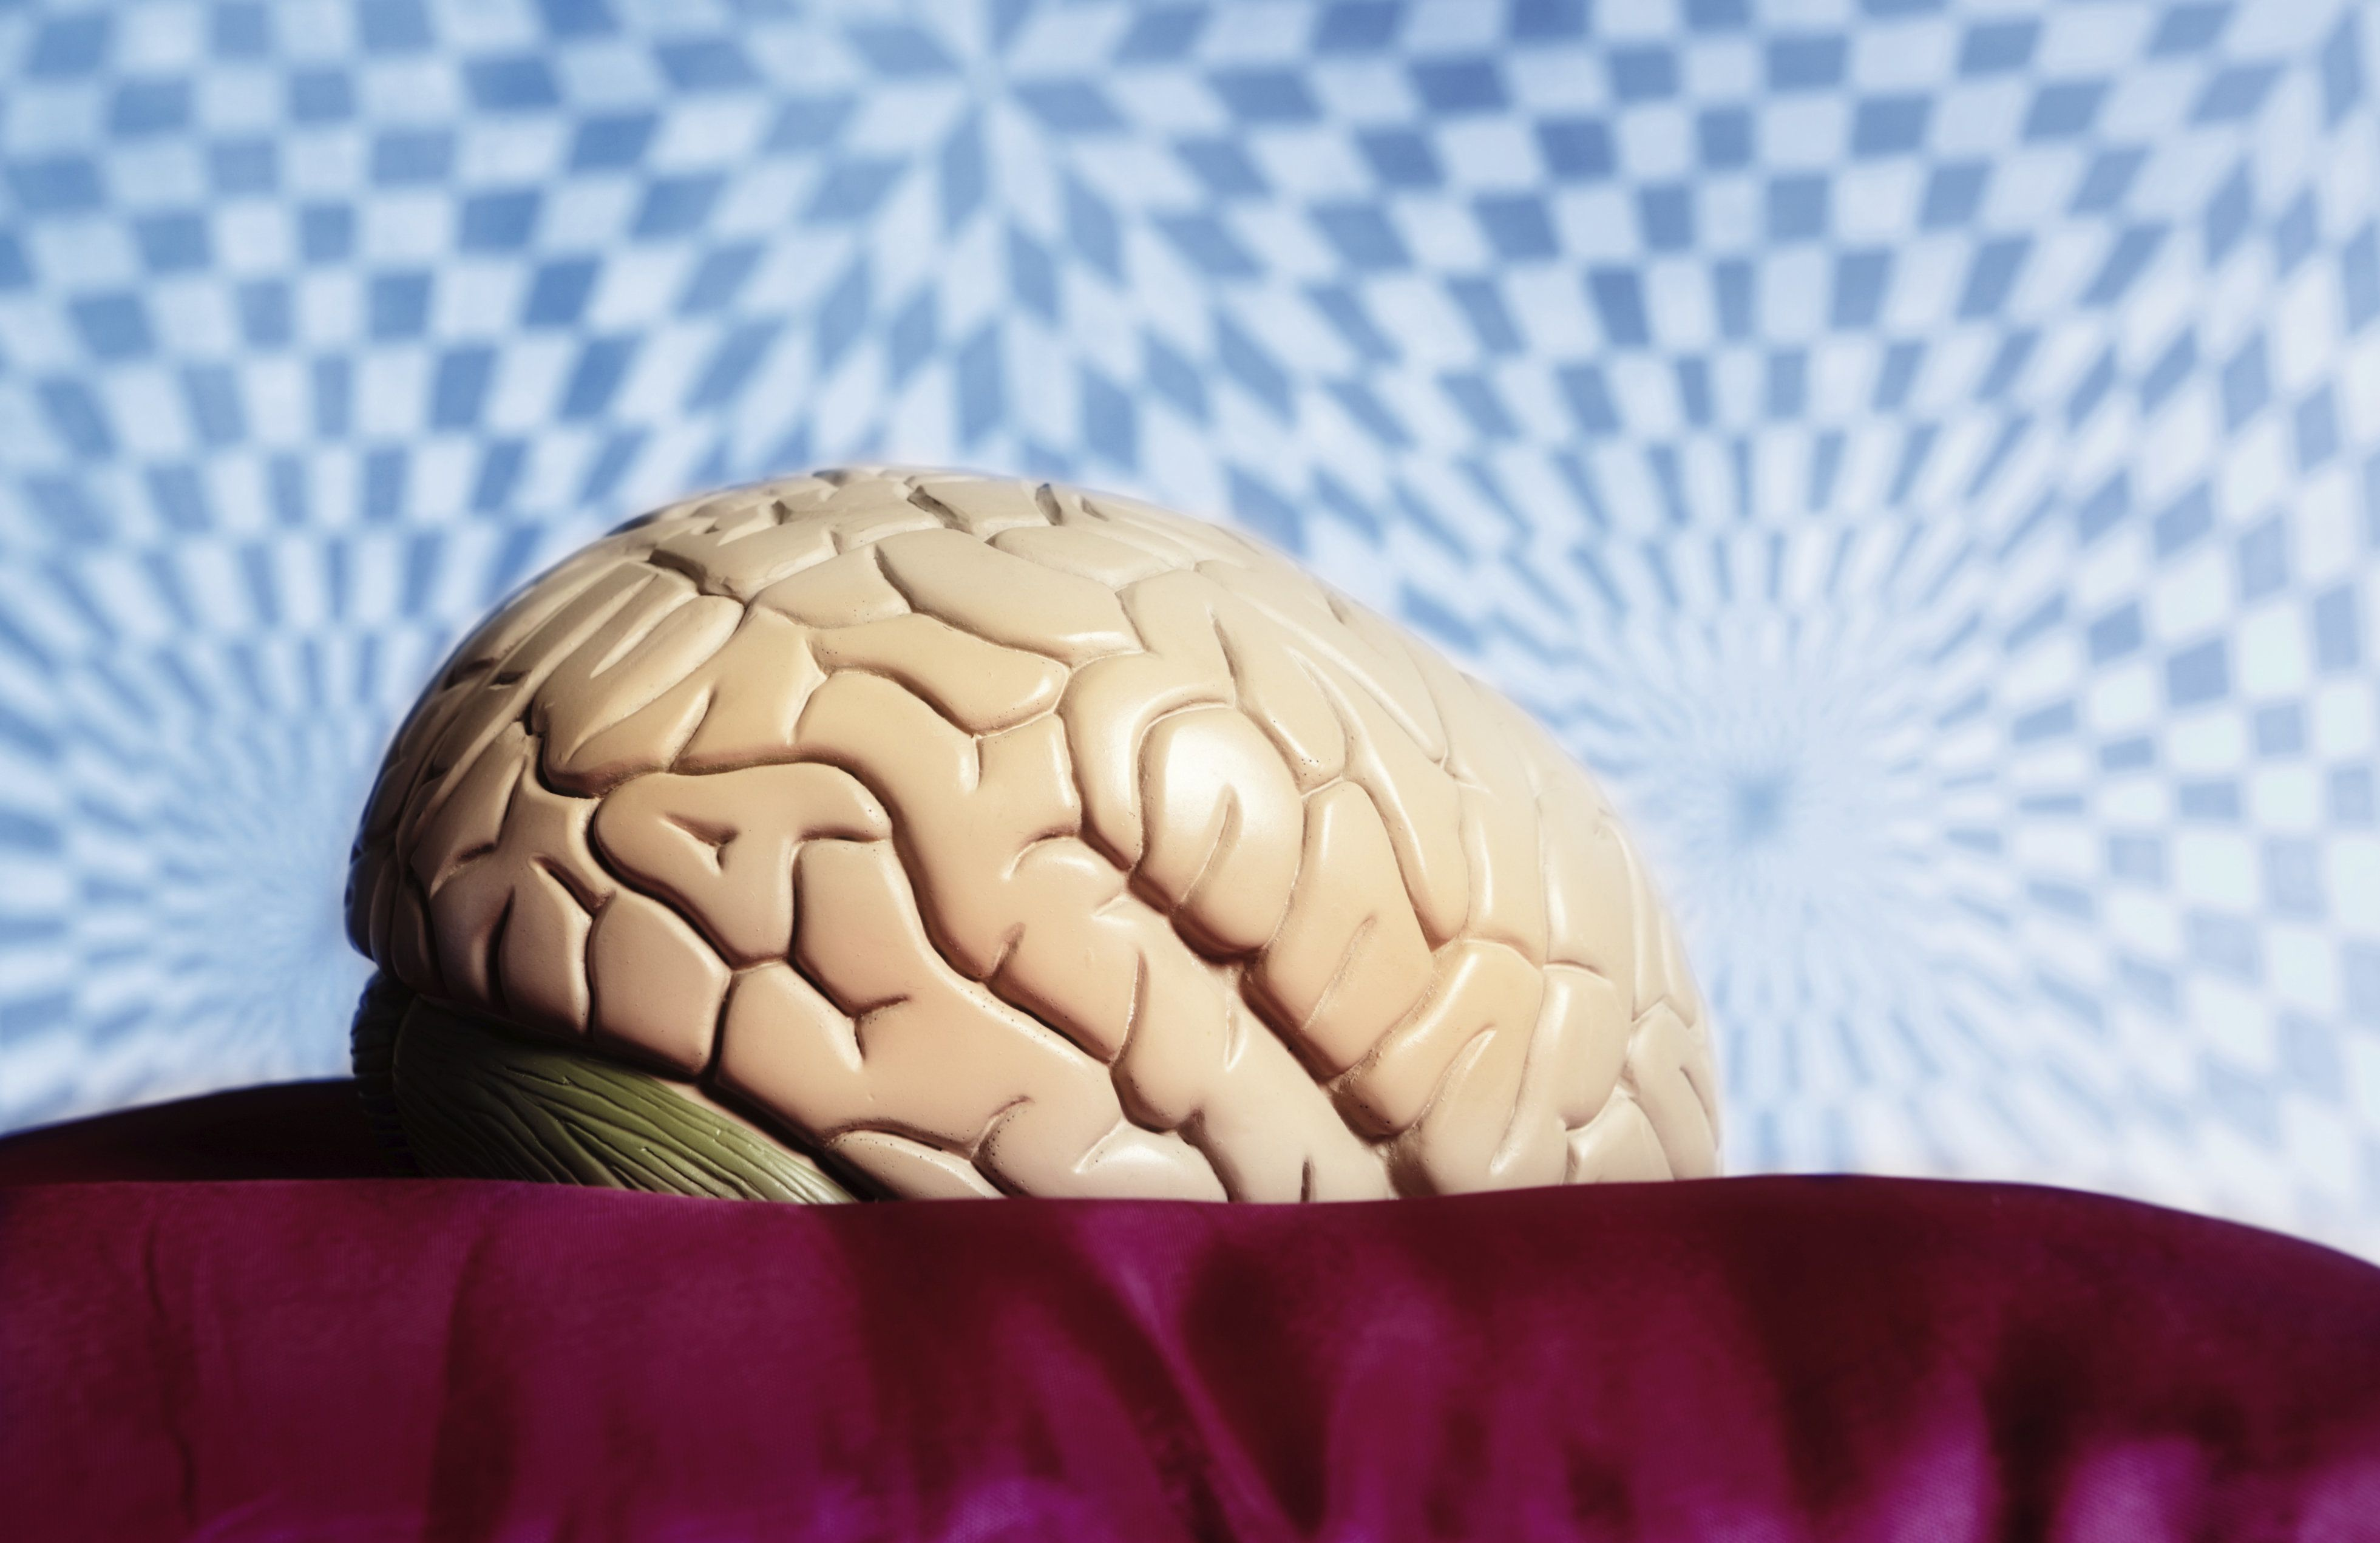 An anatomical model of the human brain sits in front of a  distorted, psychedelic looking background. Symbolizing psychedelic effects, most likely from psychotropic drugs such as LSD.